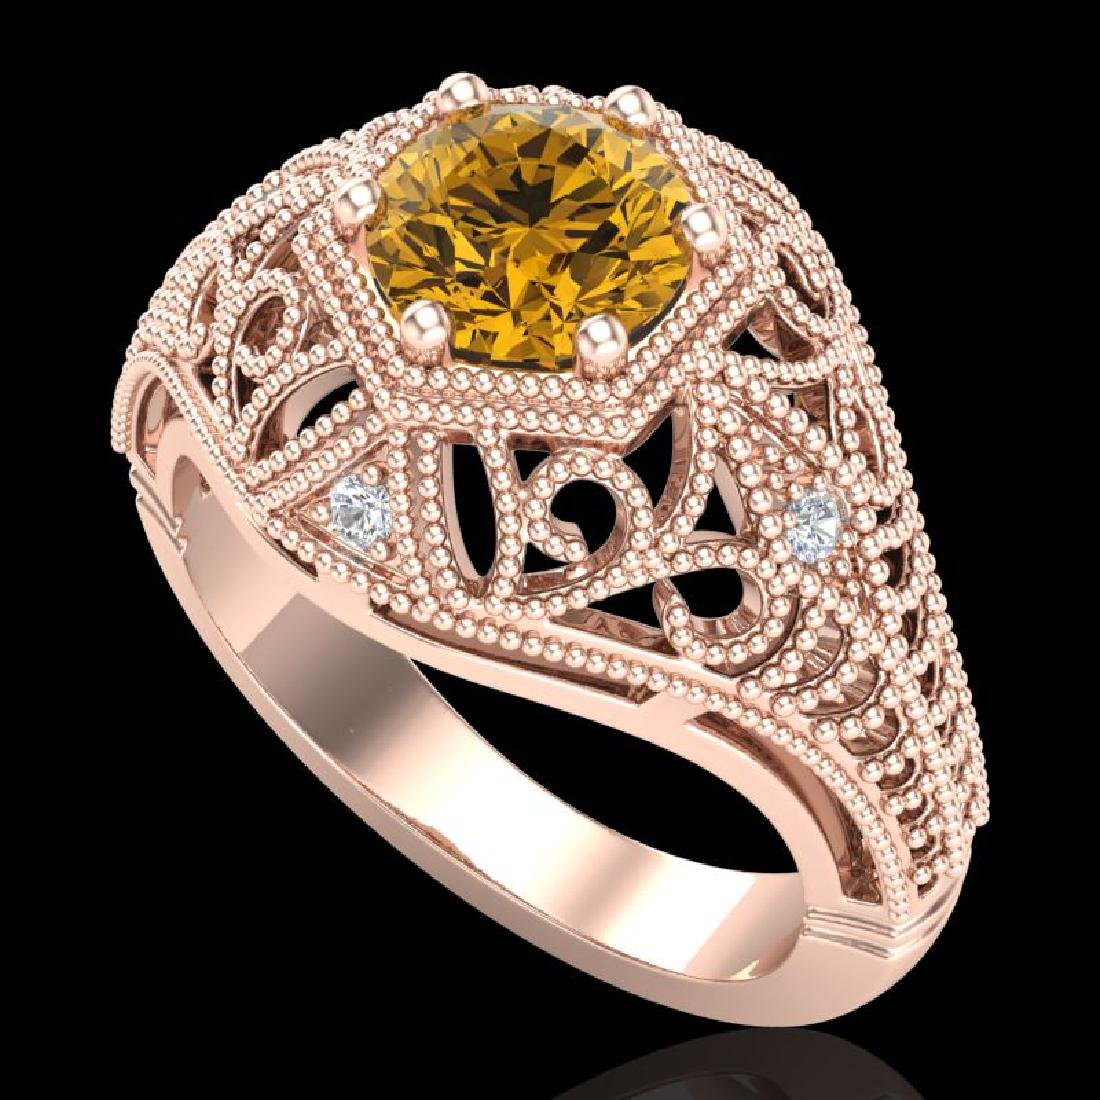 1.07 CTW Intense Fancy Yellow Diamond Engagement Art